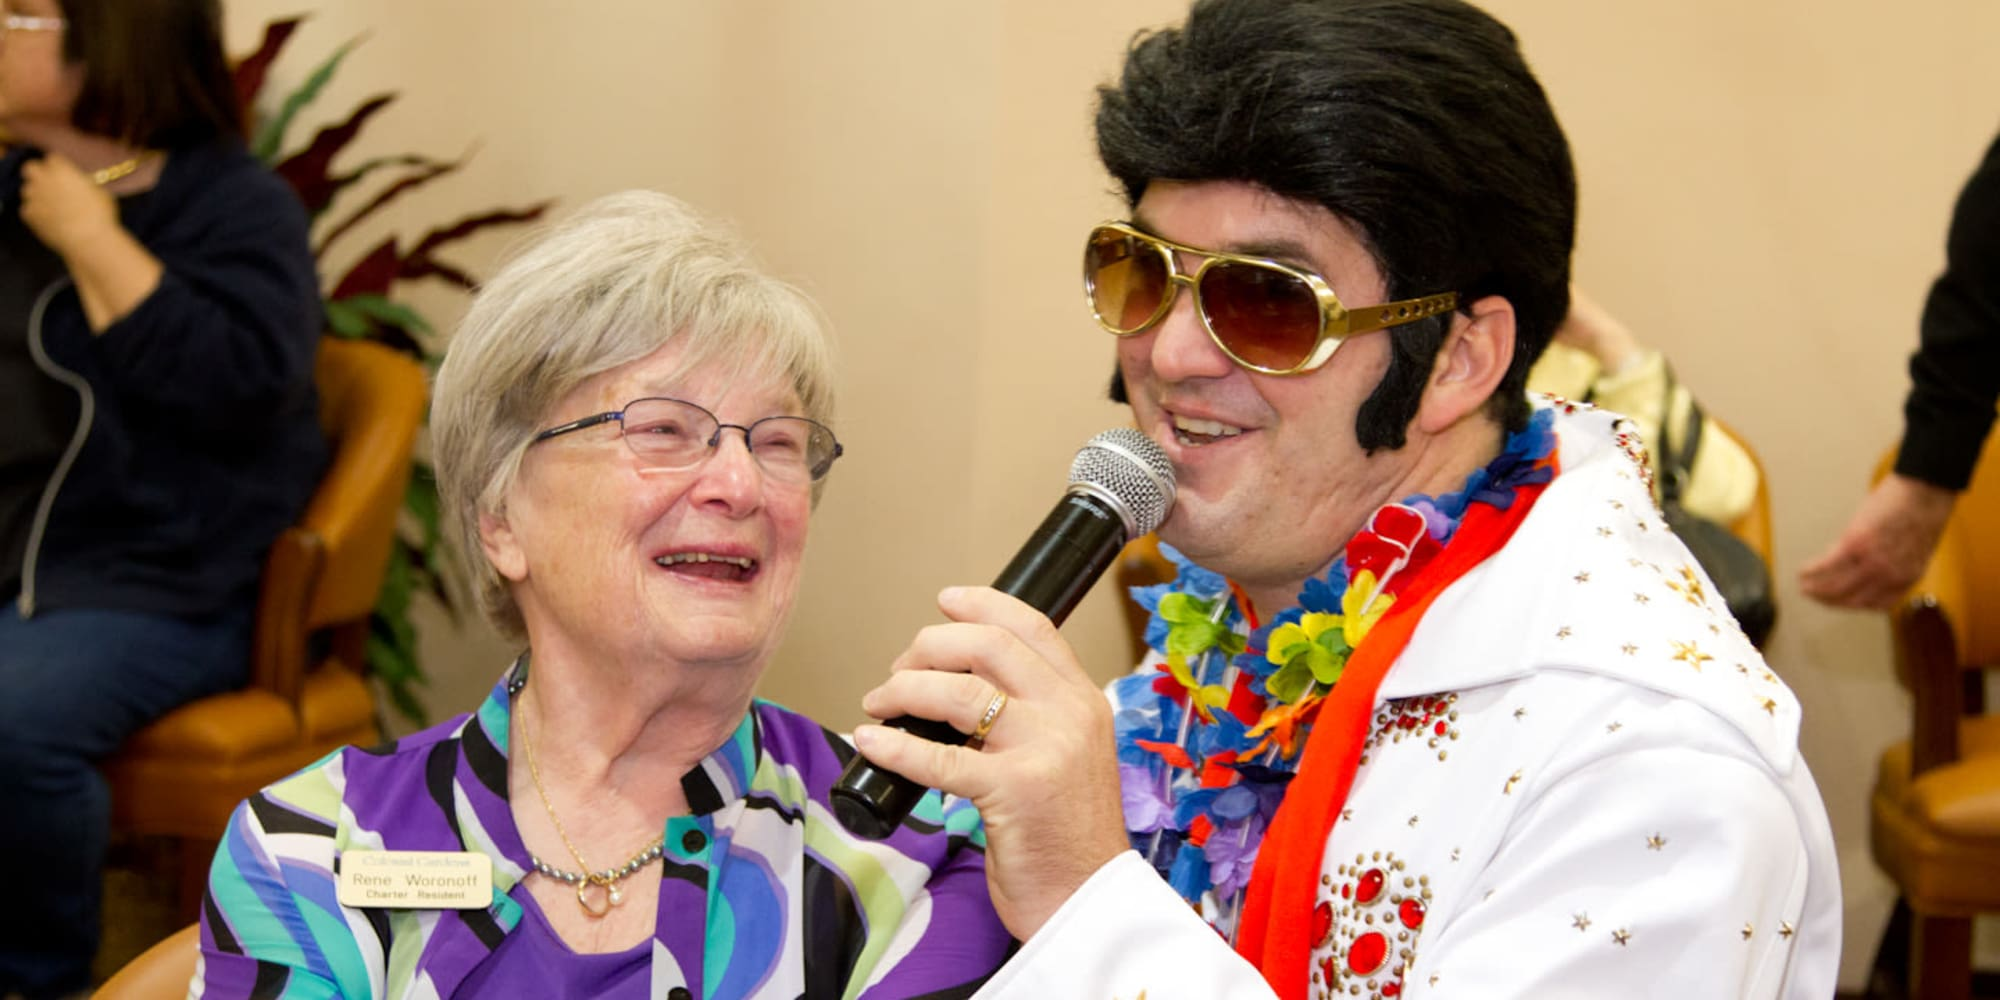 A resident listening to an Elvis impersonator sing at Desert Springs Gracious Retirement Living in Oro Valley, Arizona